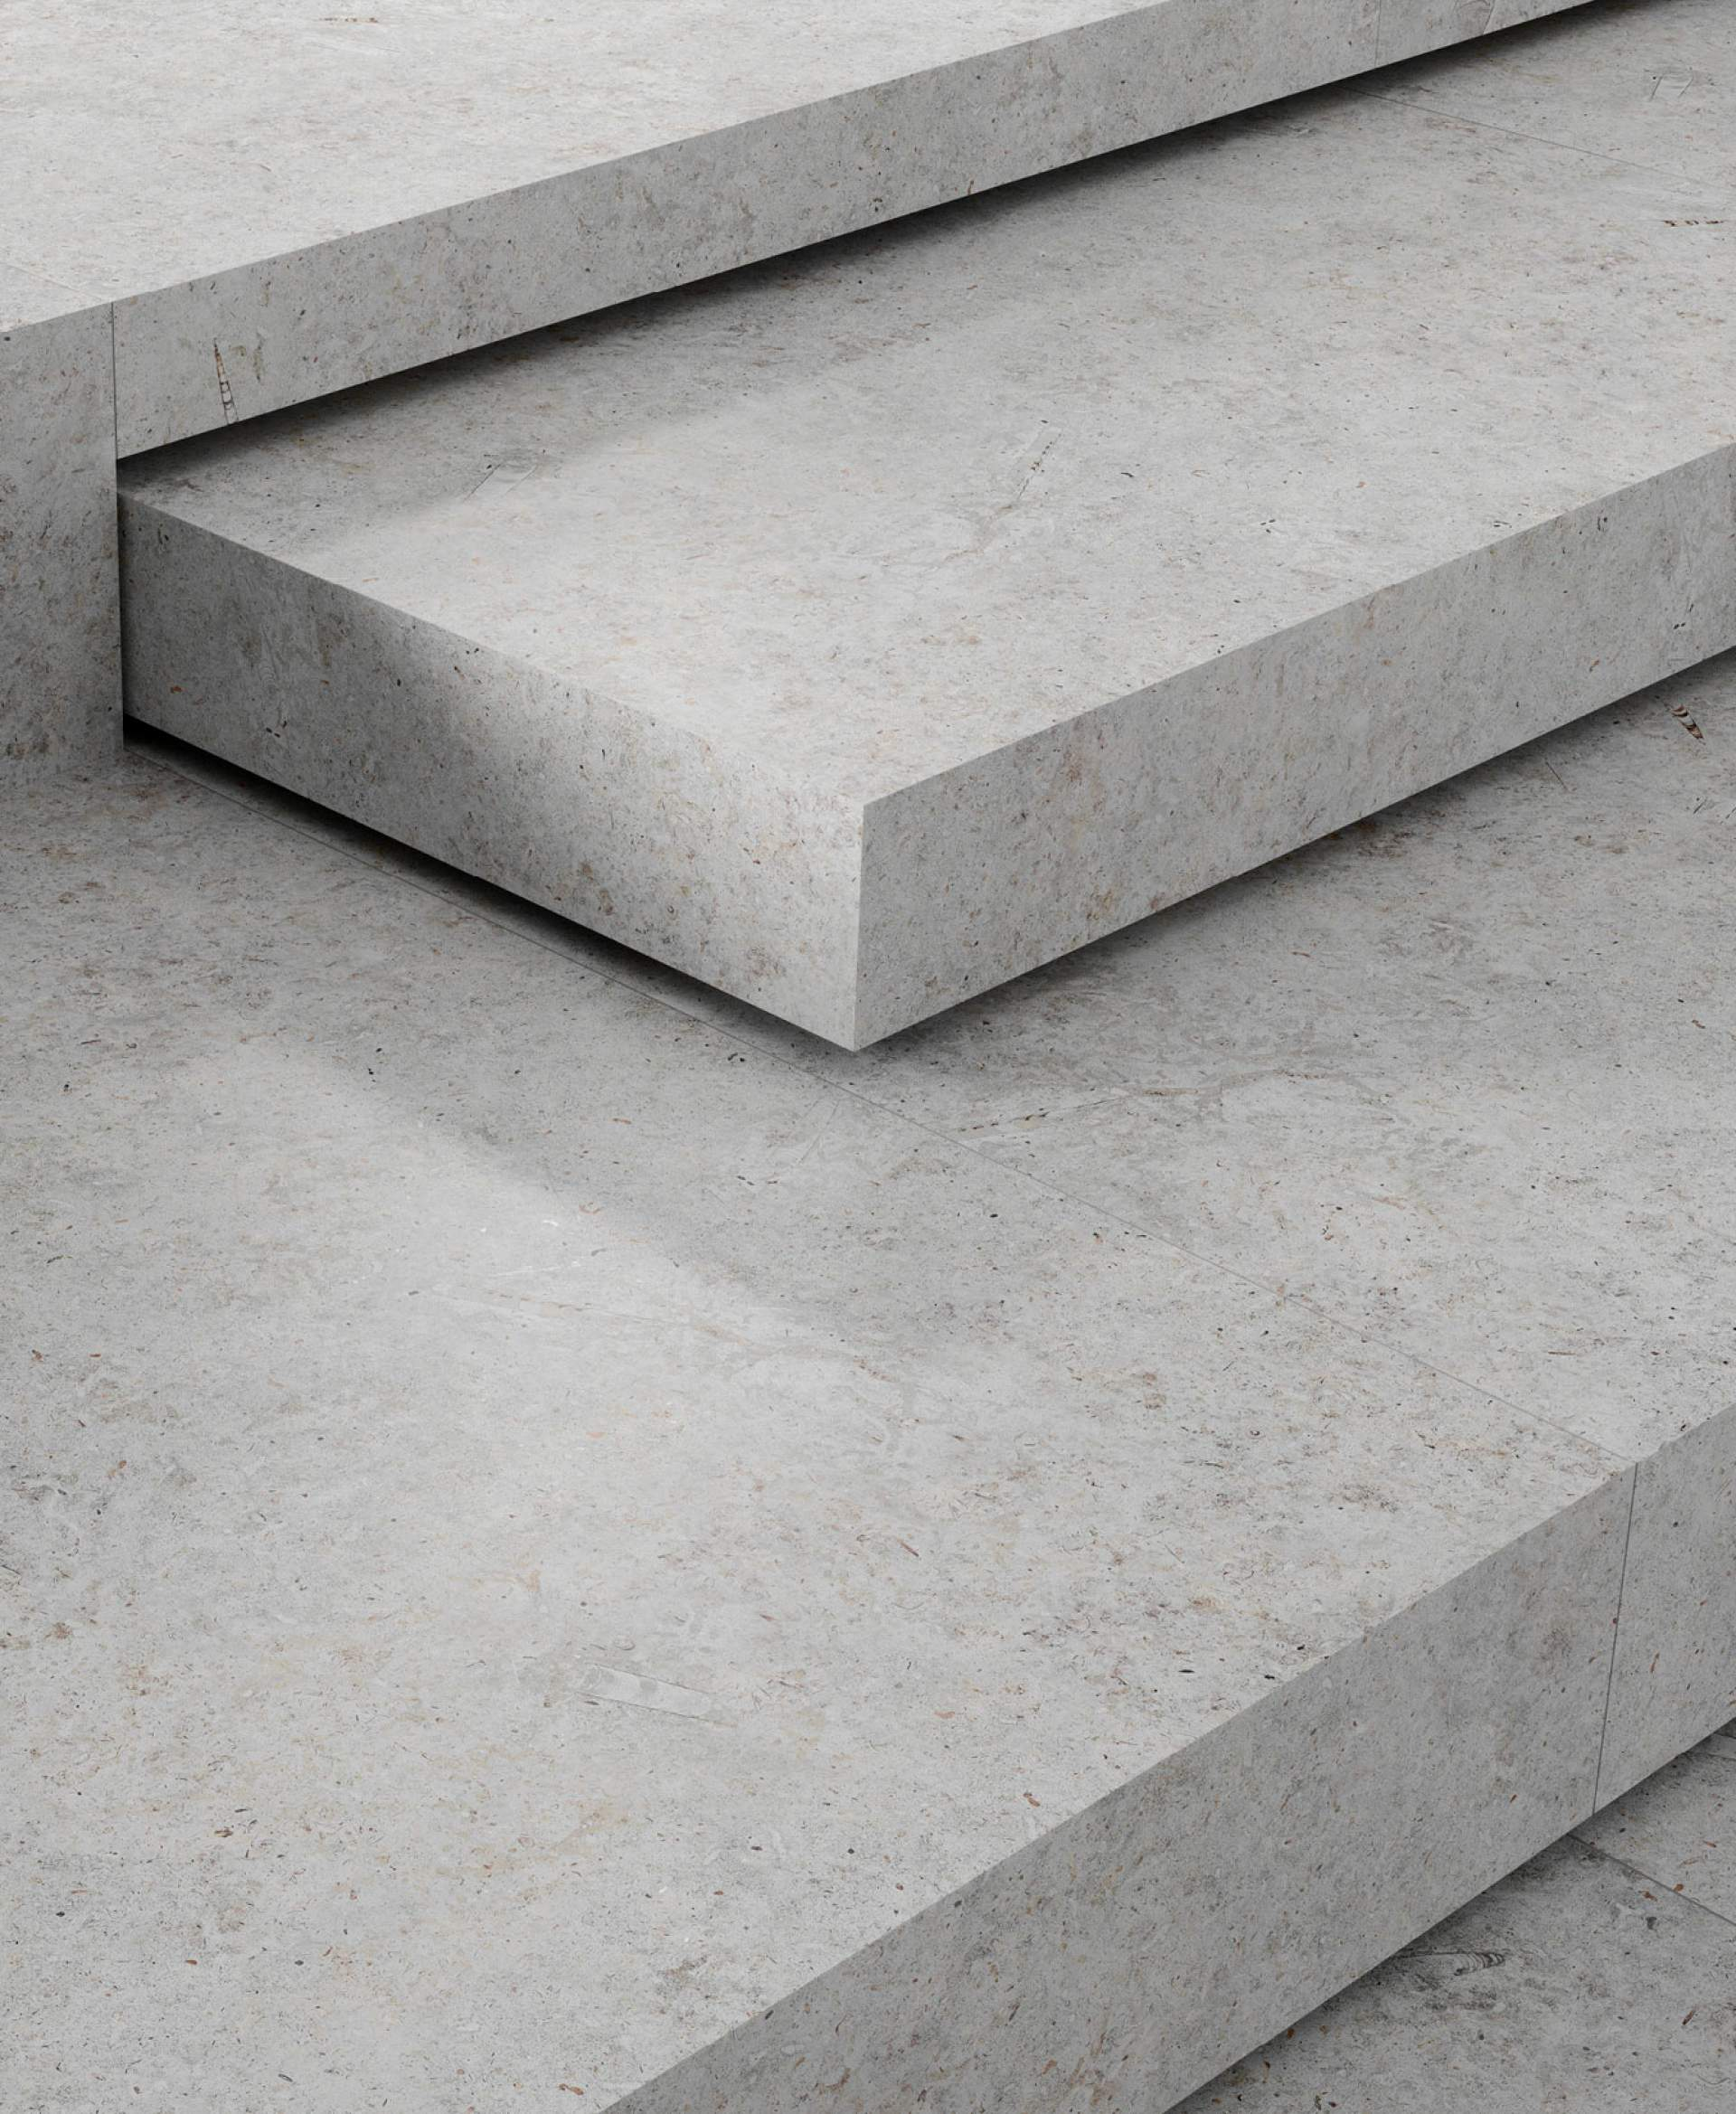 Arco steps setting using Grey Tile